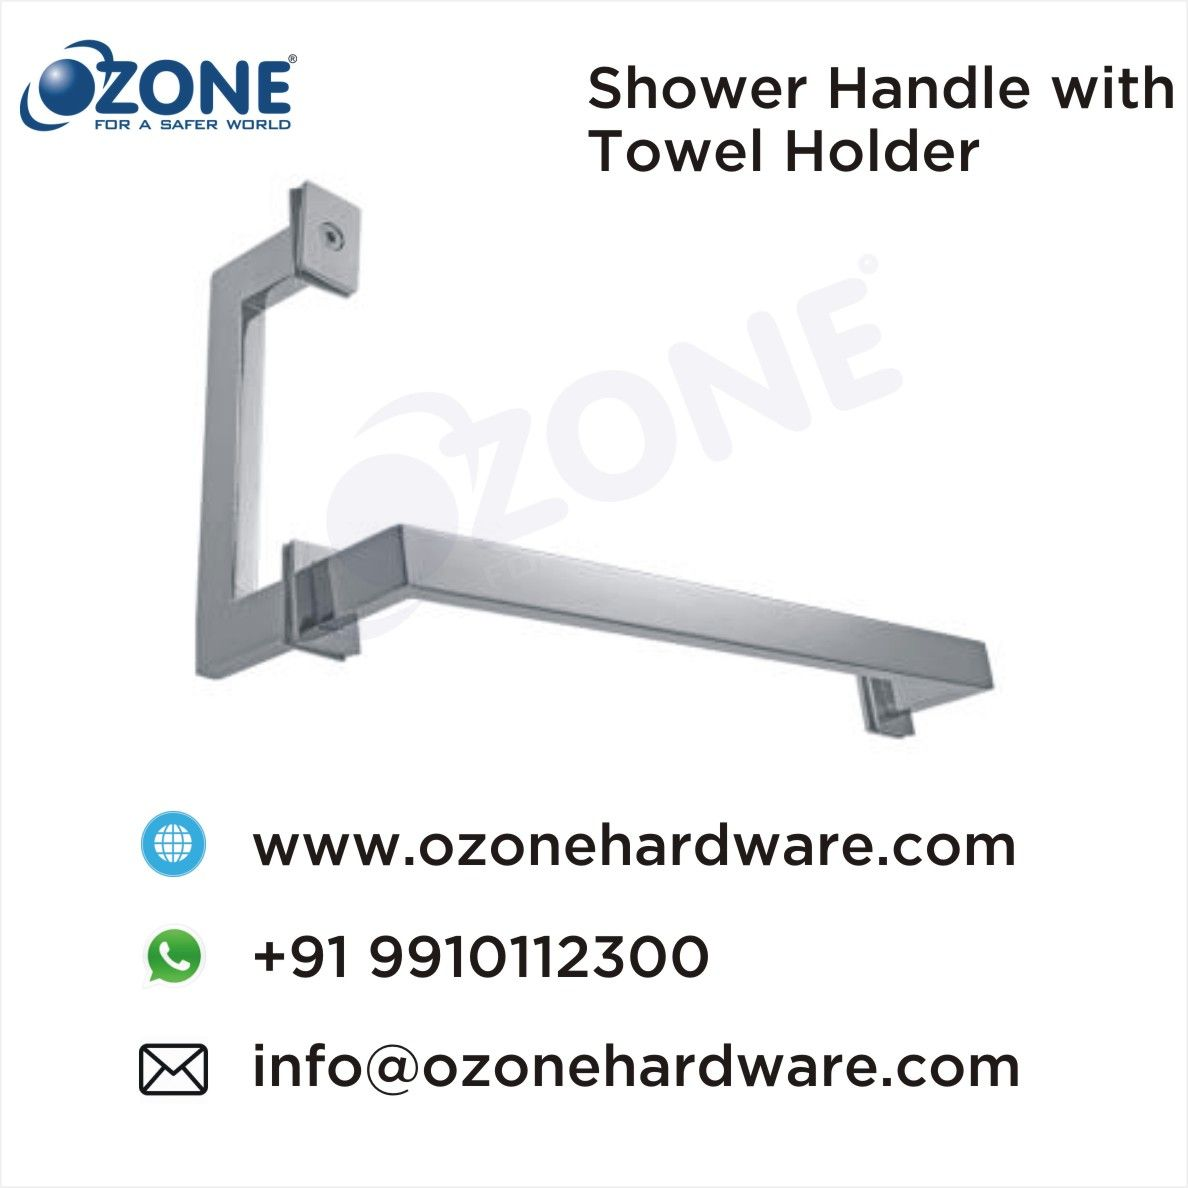 Shower Handle With Towel Holder Towel Bars Handles Shower Cubicles Accessories Bathroom Accessories Towel Holder Cubicle Accessories Towel Bar